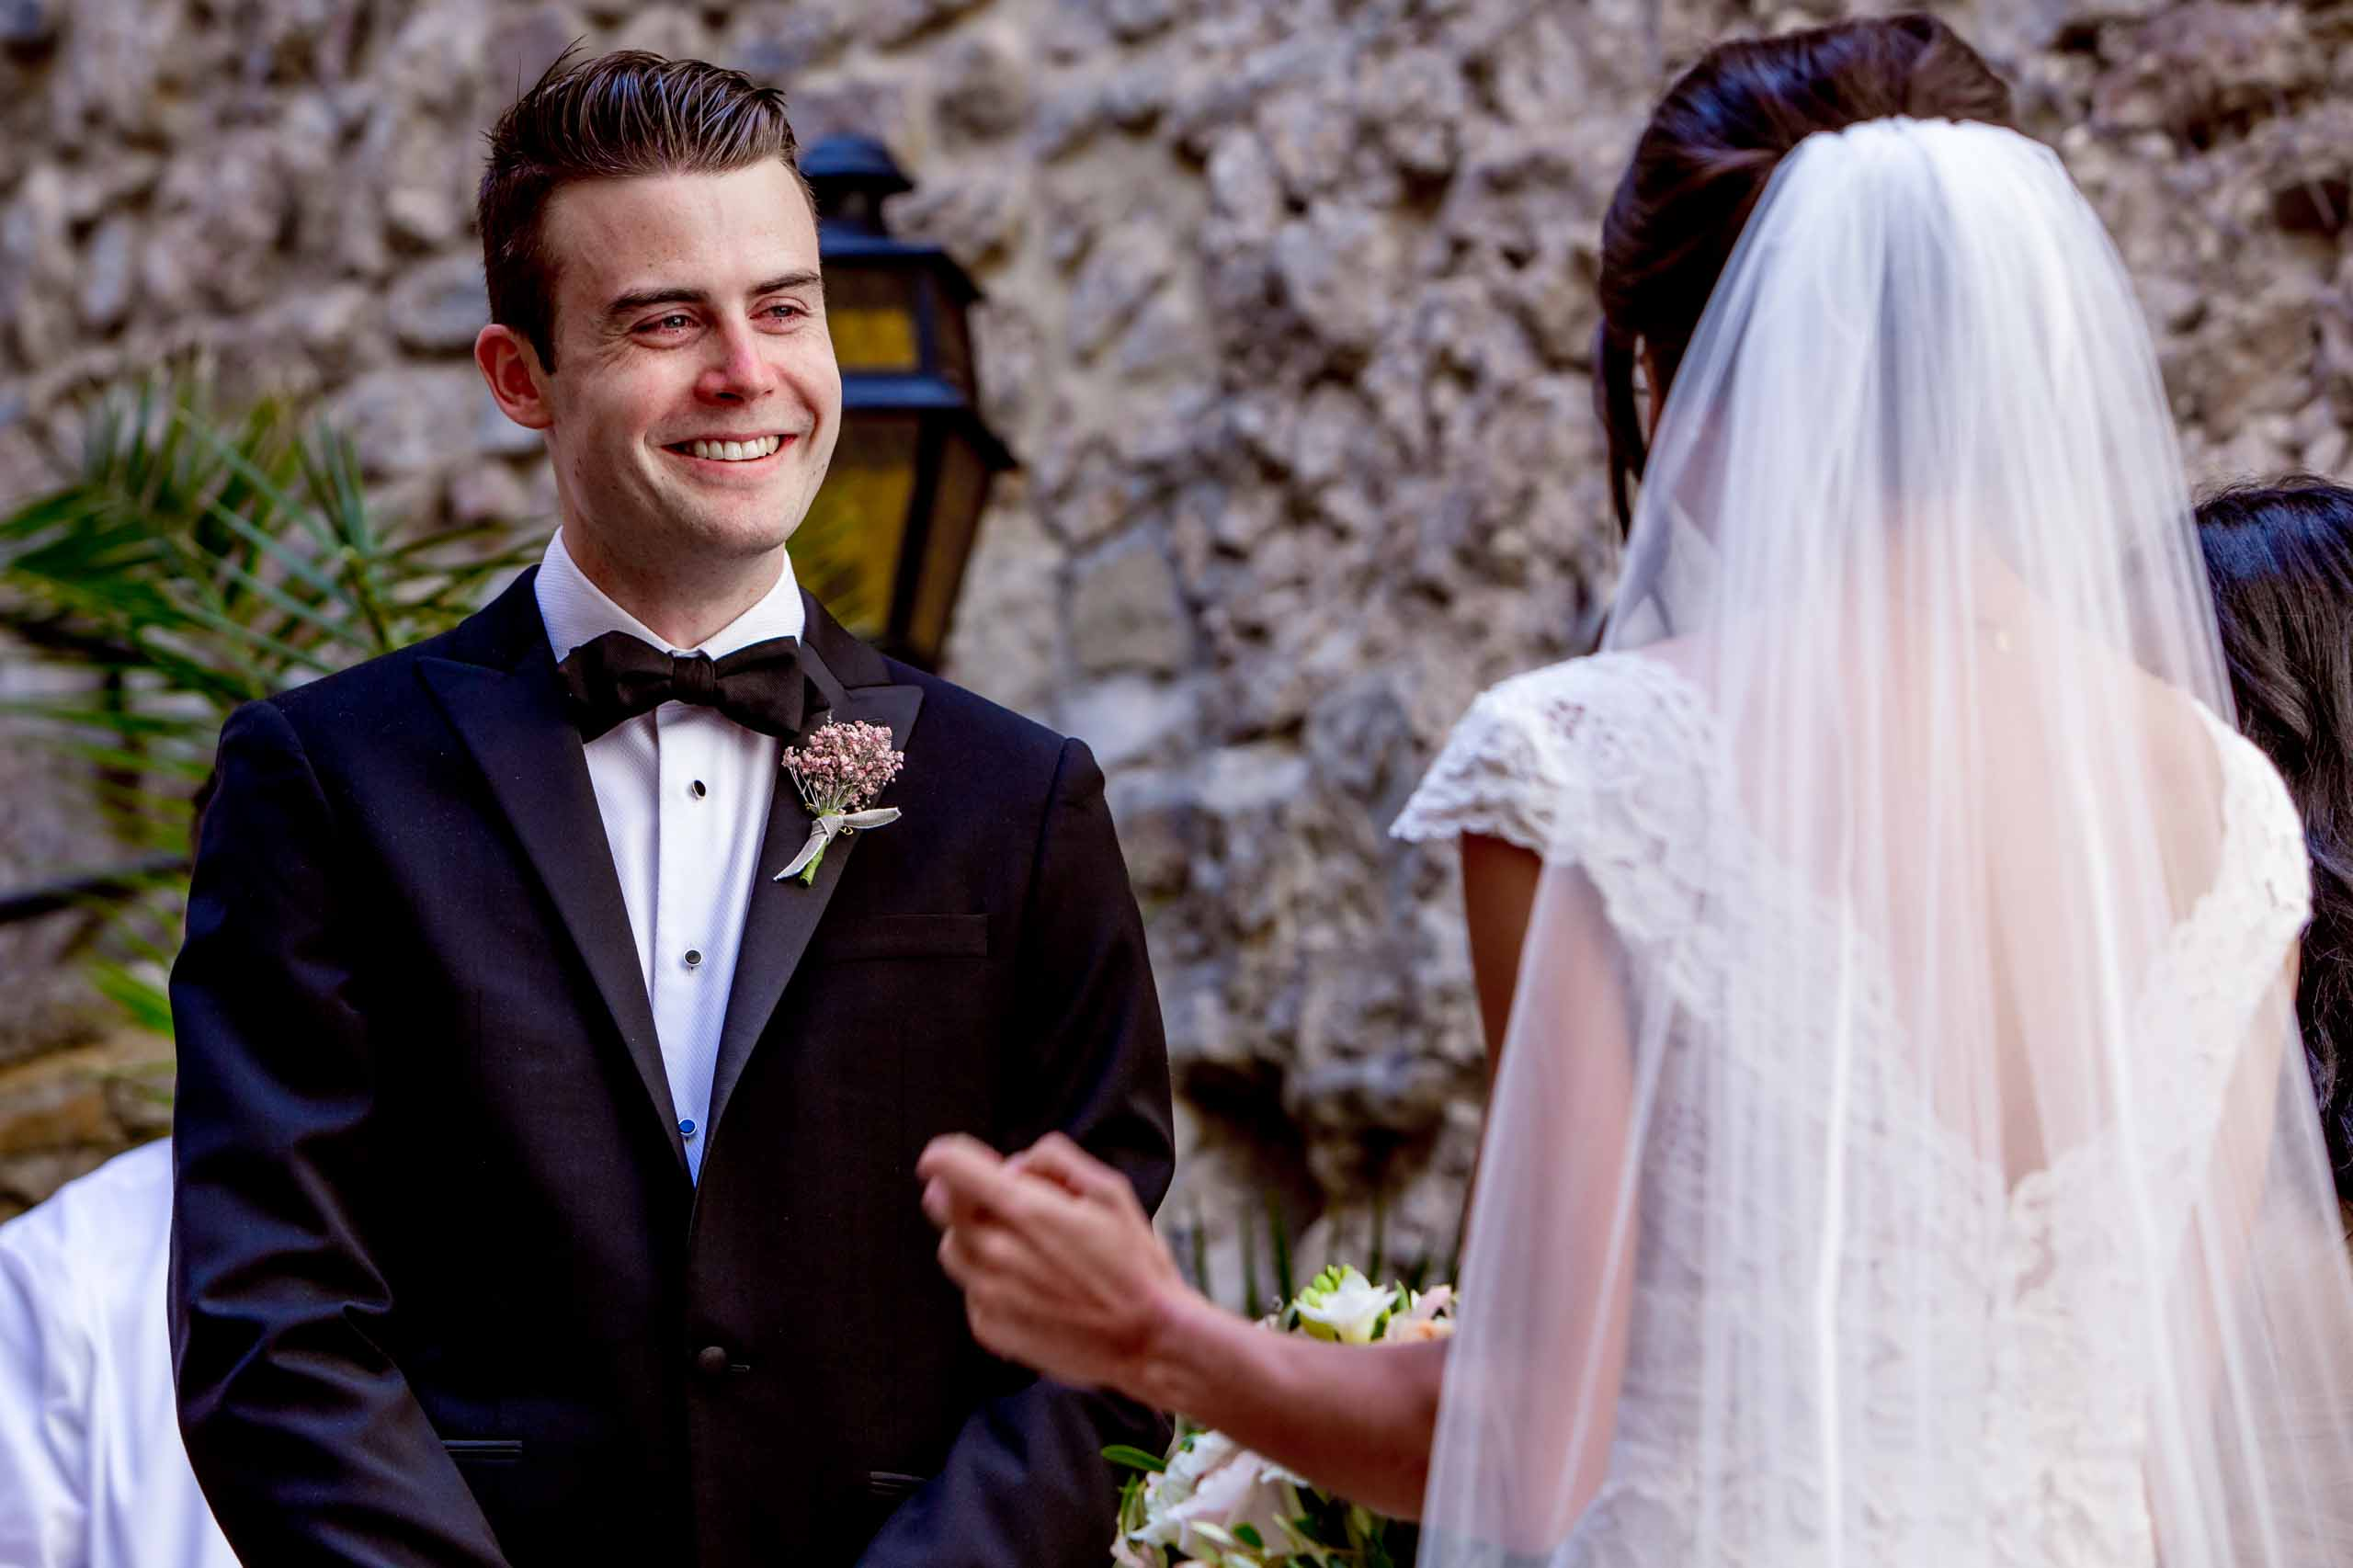 Emotional groom sharing vows during a Chateau Zen wedding ceremony in the South of France near Montepelier.